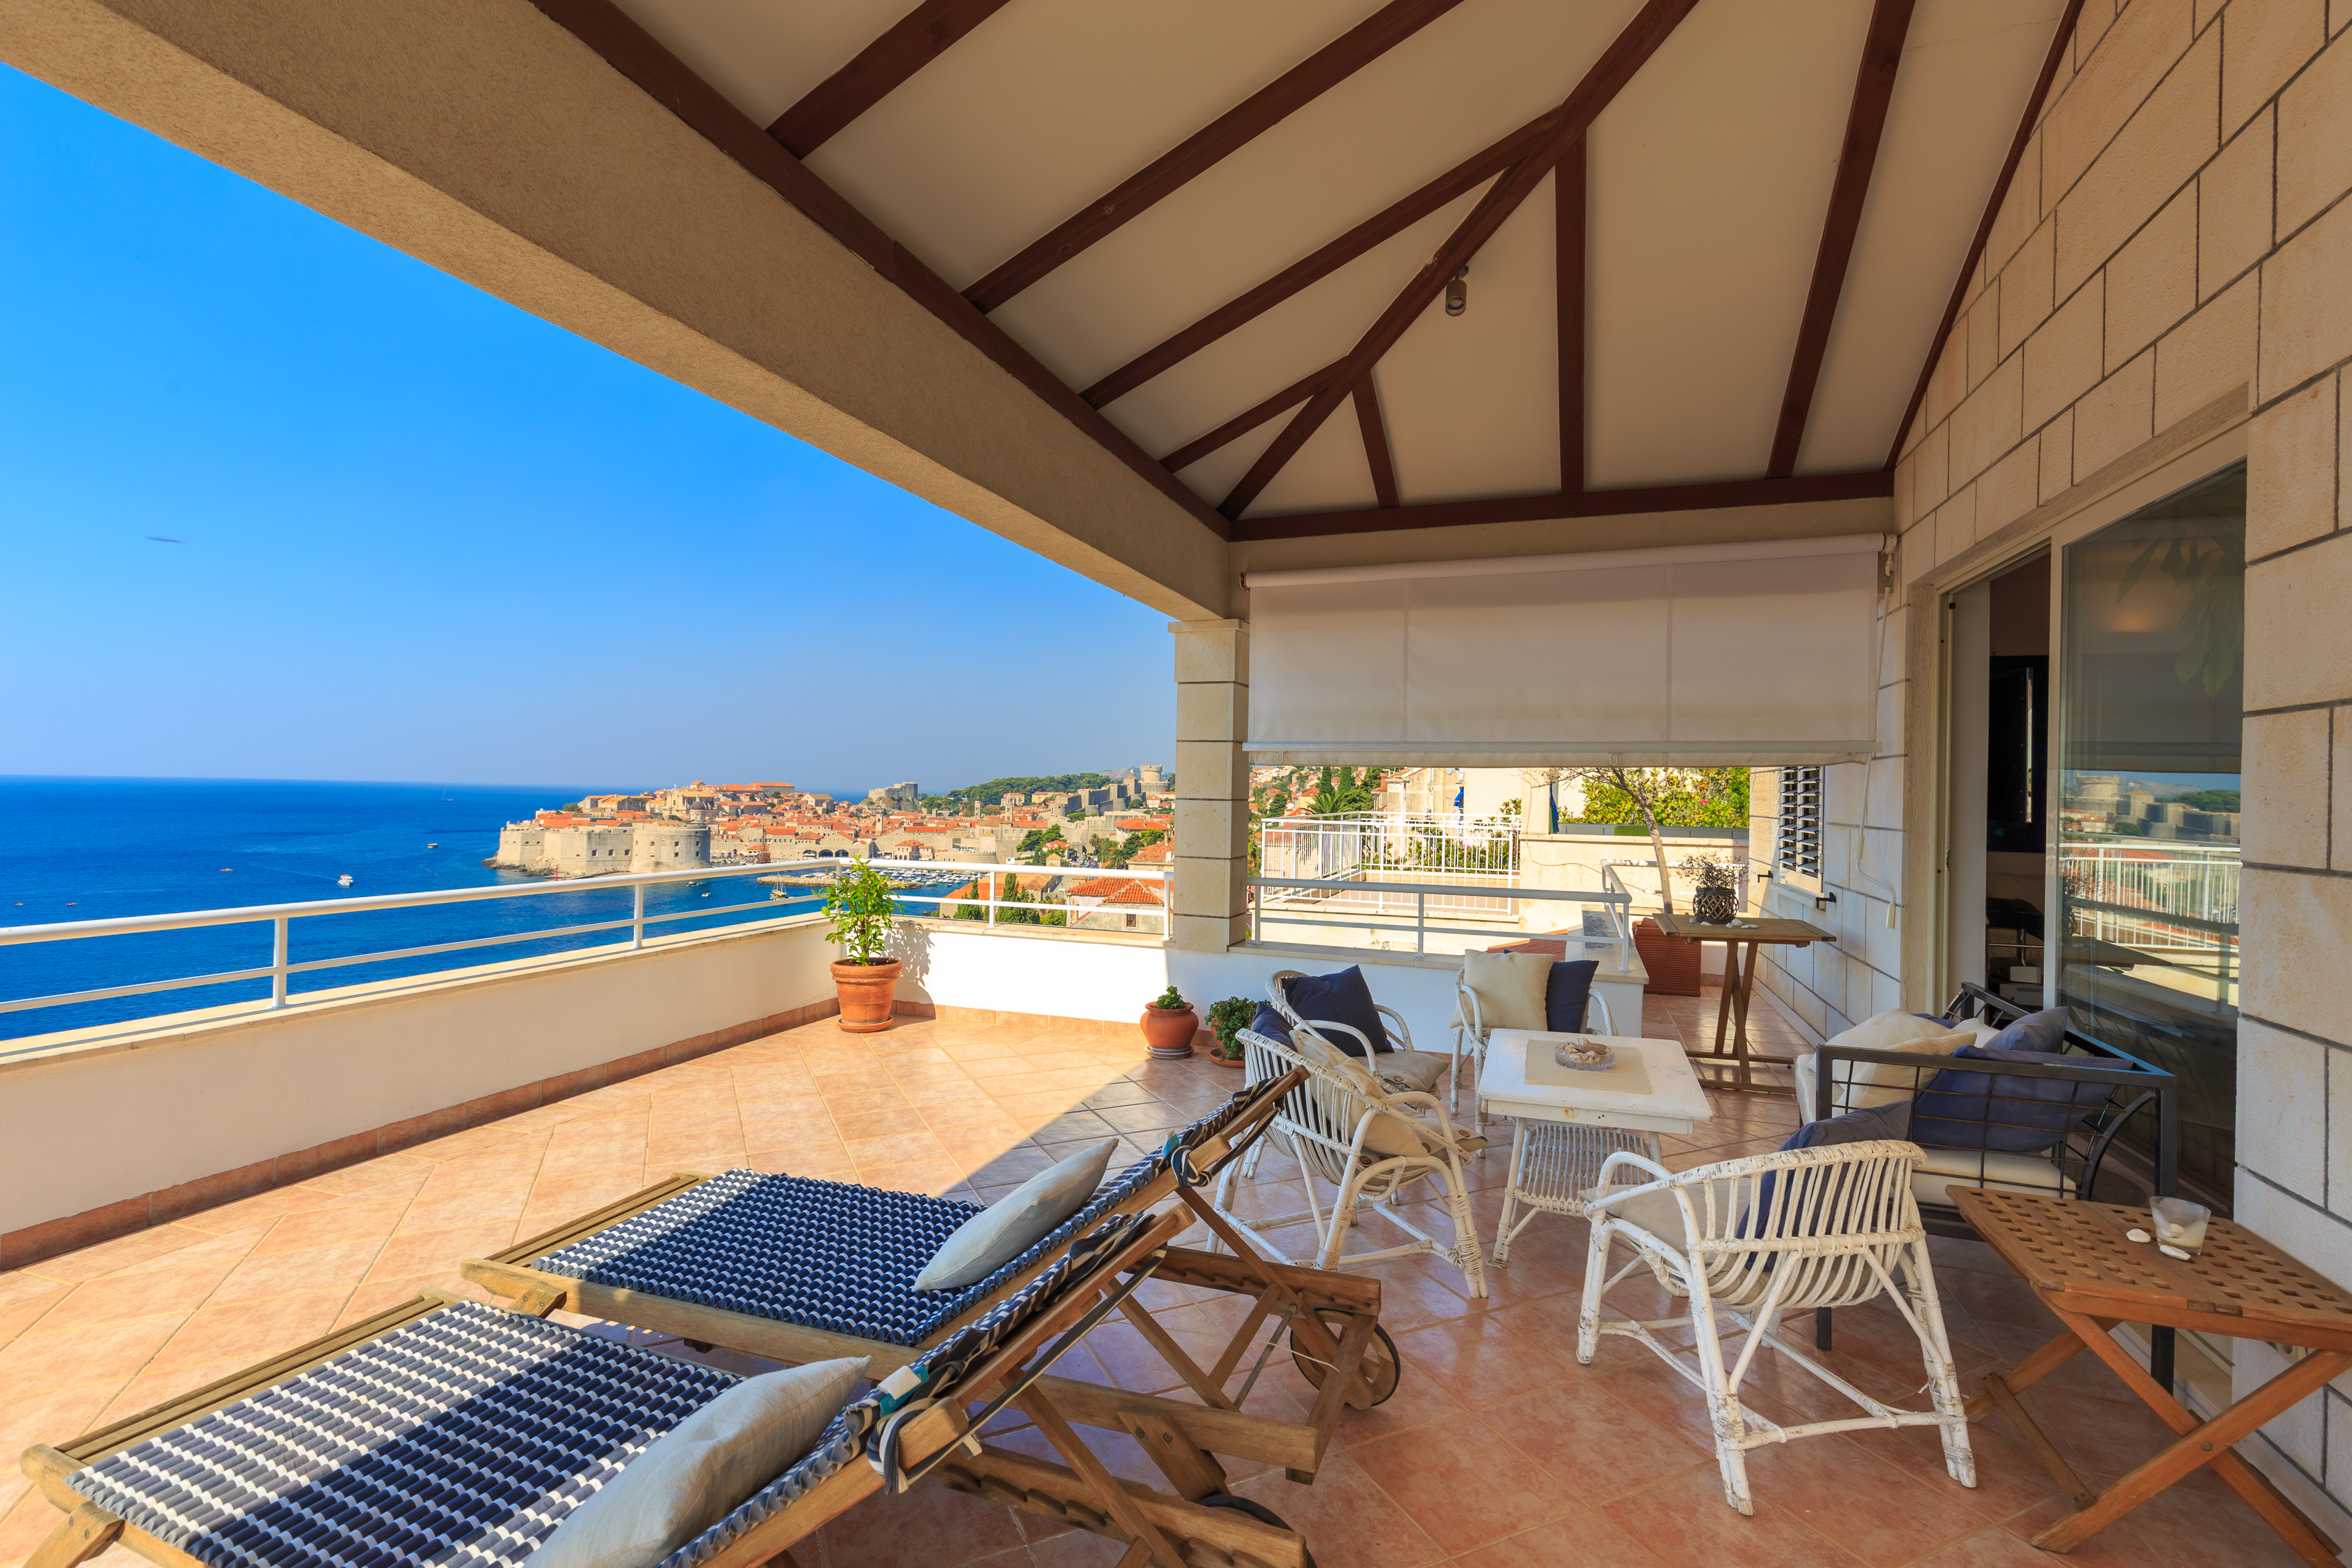 <p>Sleeps 6<br />3 bedrooms<br />3 bathrooms<br />Kitchen, dining area and living room<br />Terrace and outside sitting area<br />Distance to Old Town: 5 minutes walk<br />Distance to Banje beach: 3 minutes walk</p>